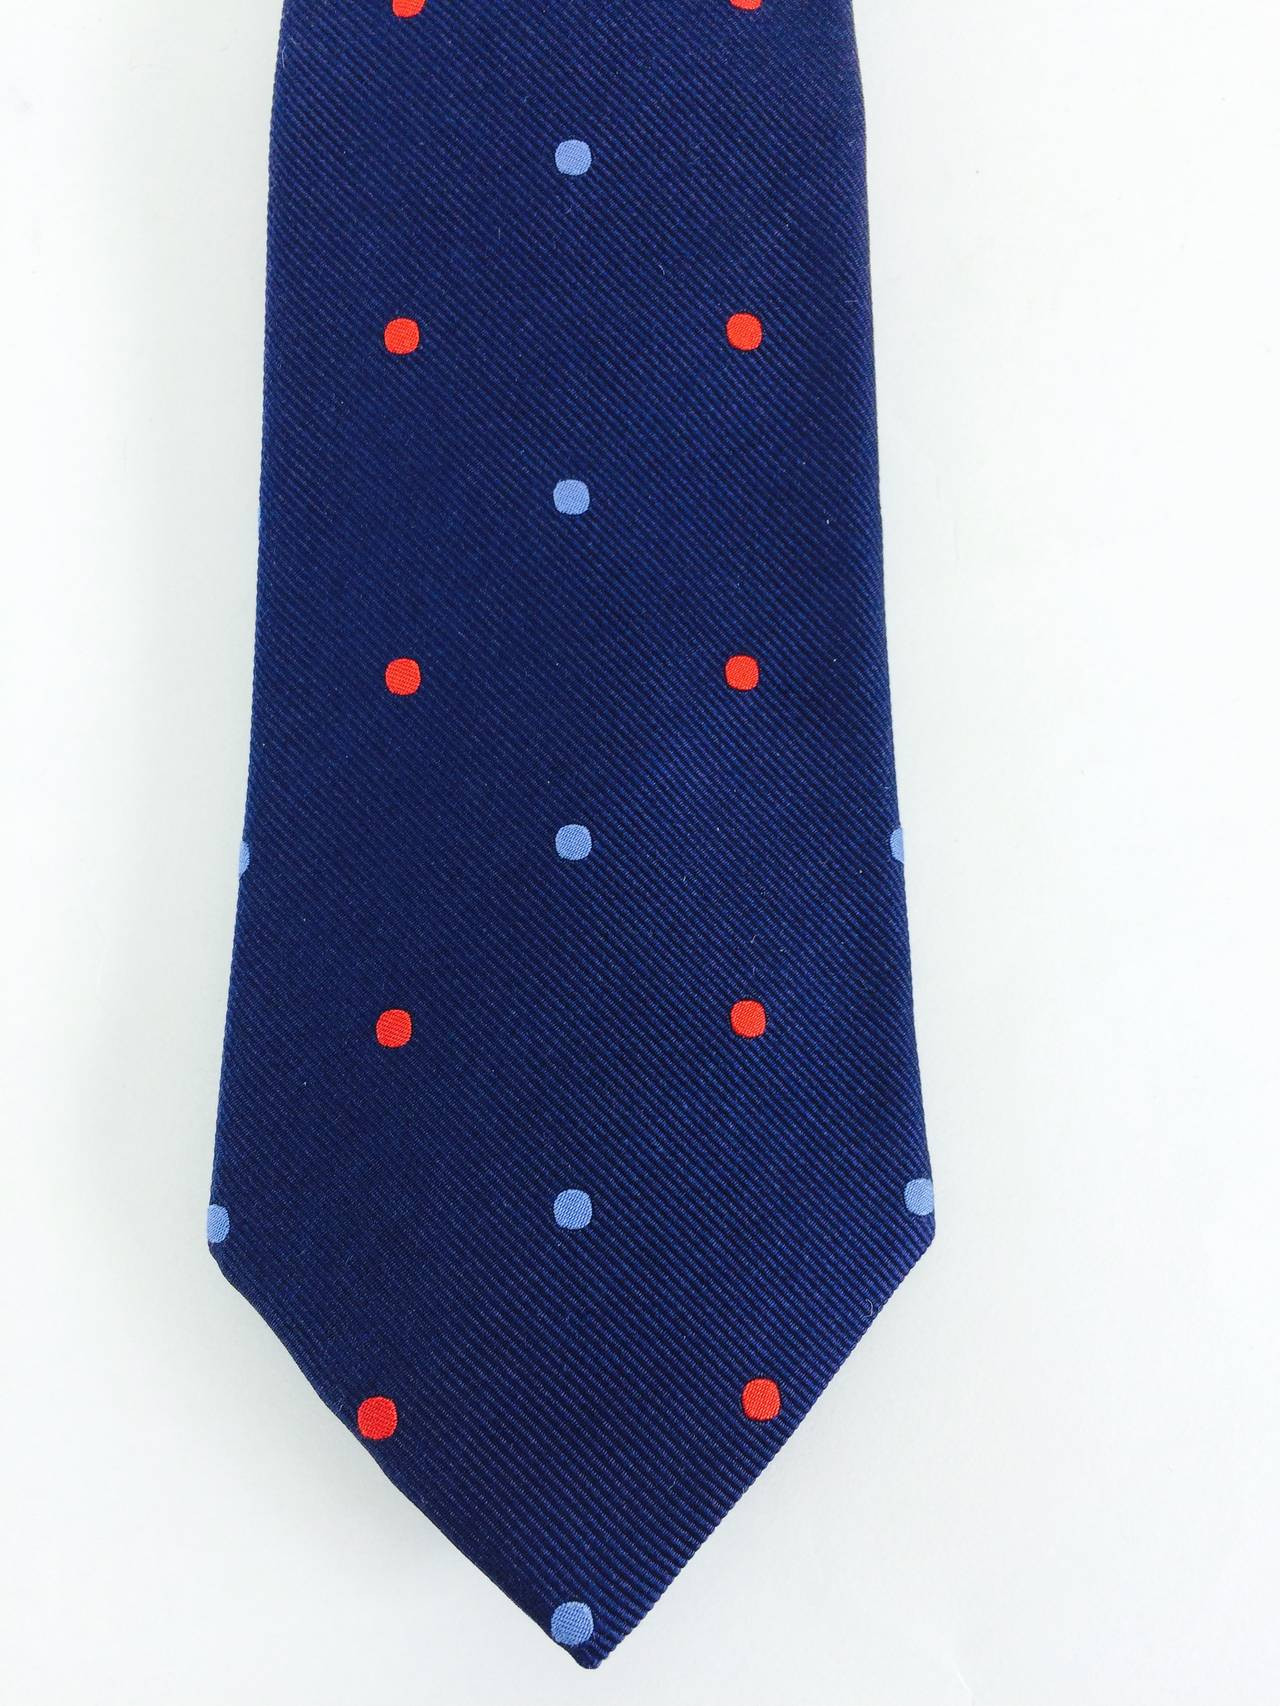 Turnbull & Asser navy blue silk twill tie with light blue & red dots in excellent condition